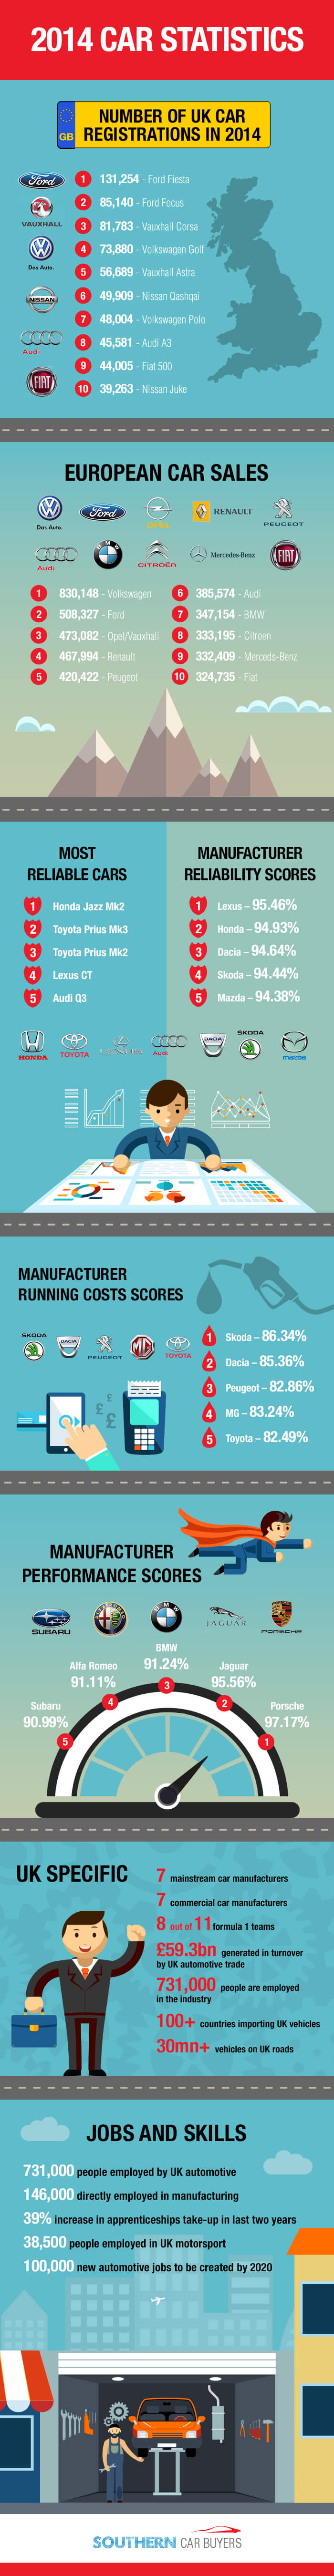 automotive 2014 industry round-up infographic